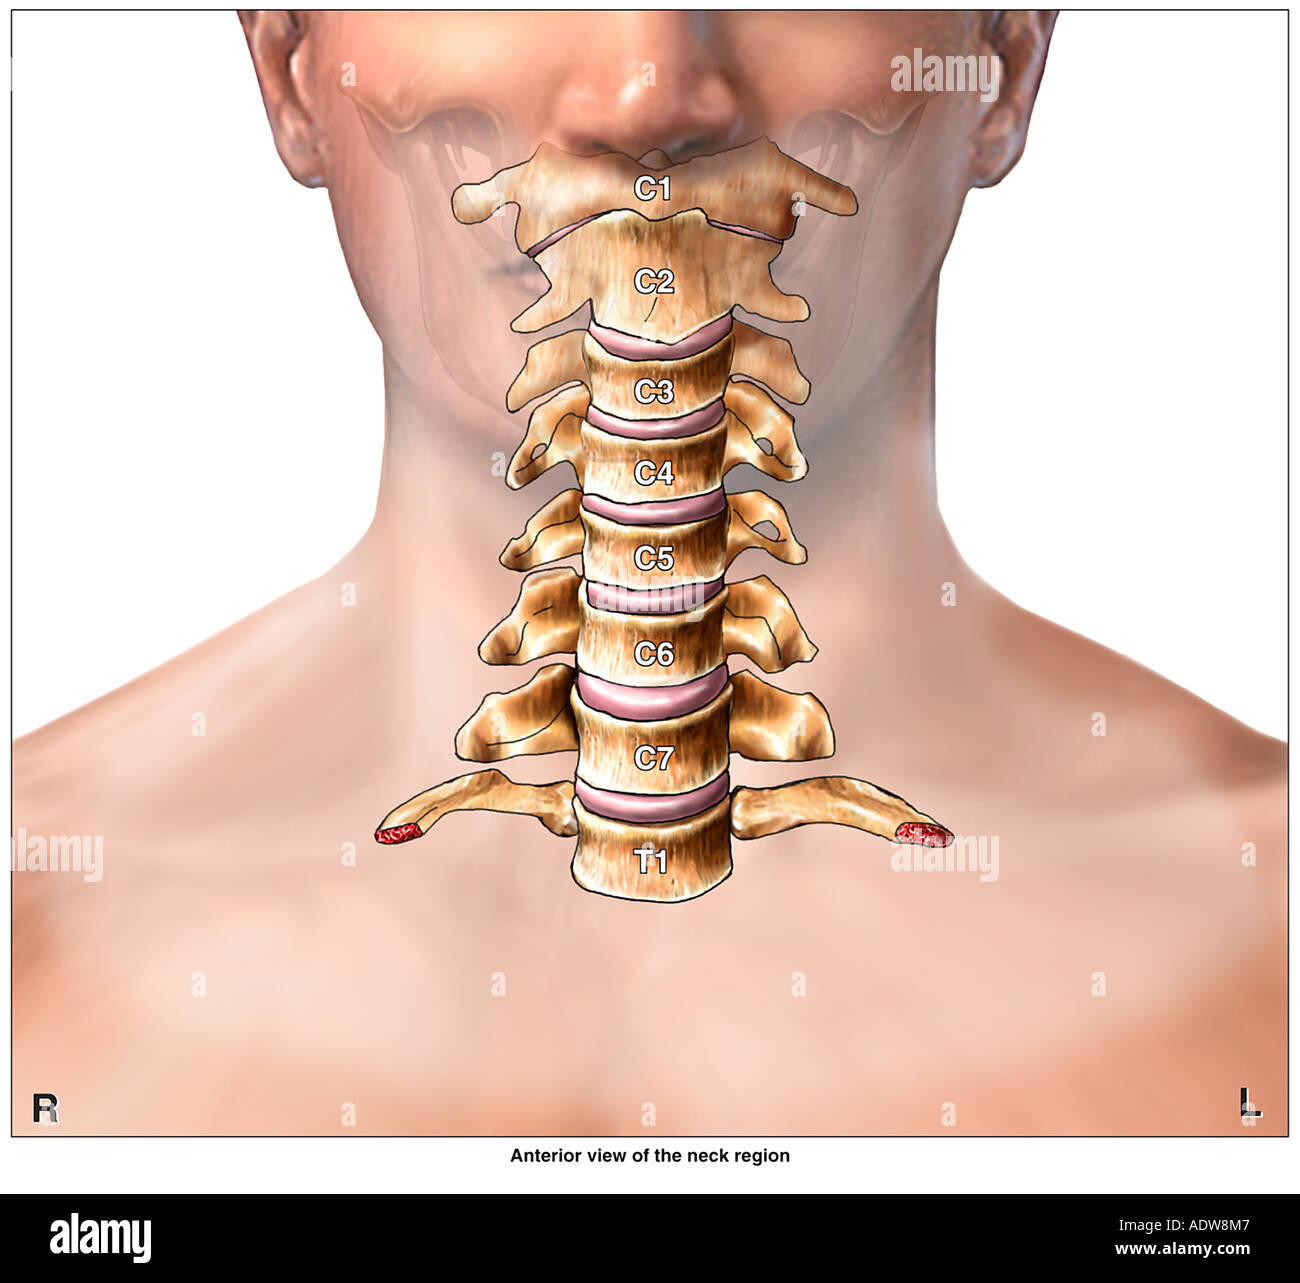 Anatomy of the Cervical Spine Region showing Neck Vertebrae Stock ...